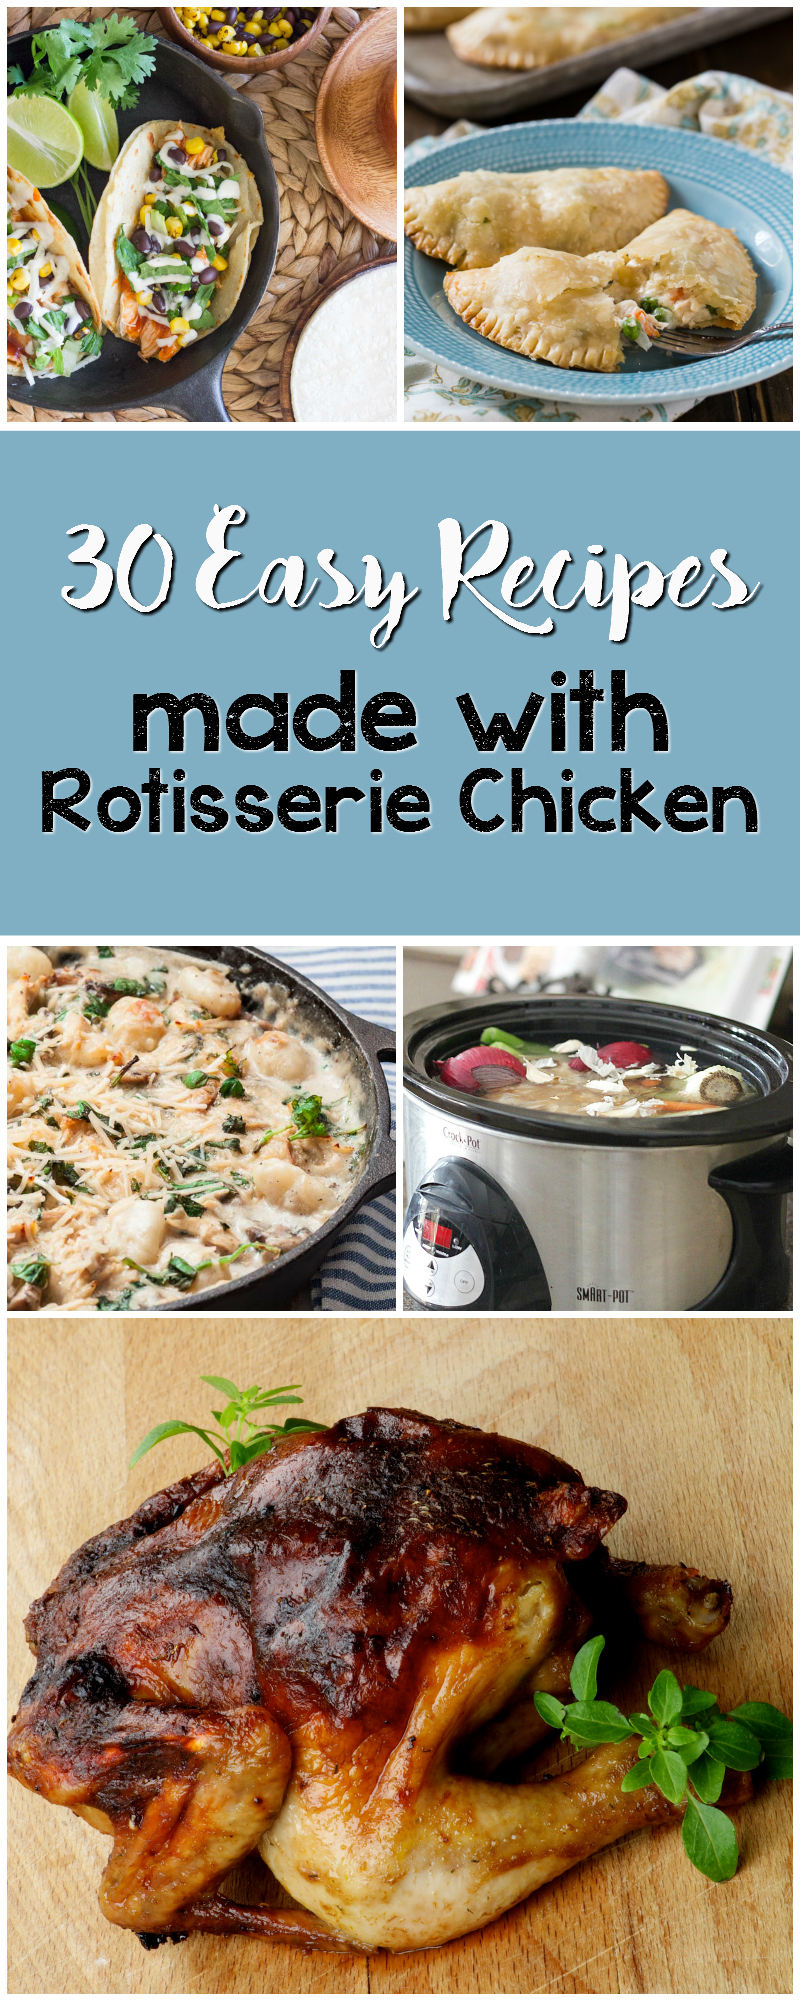 30 easy recipes made with rotisserie chicken